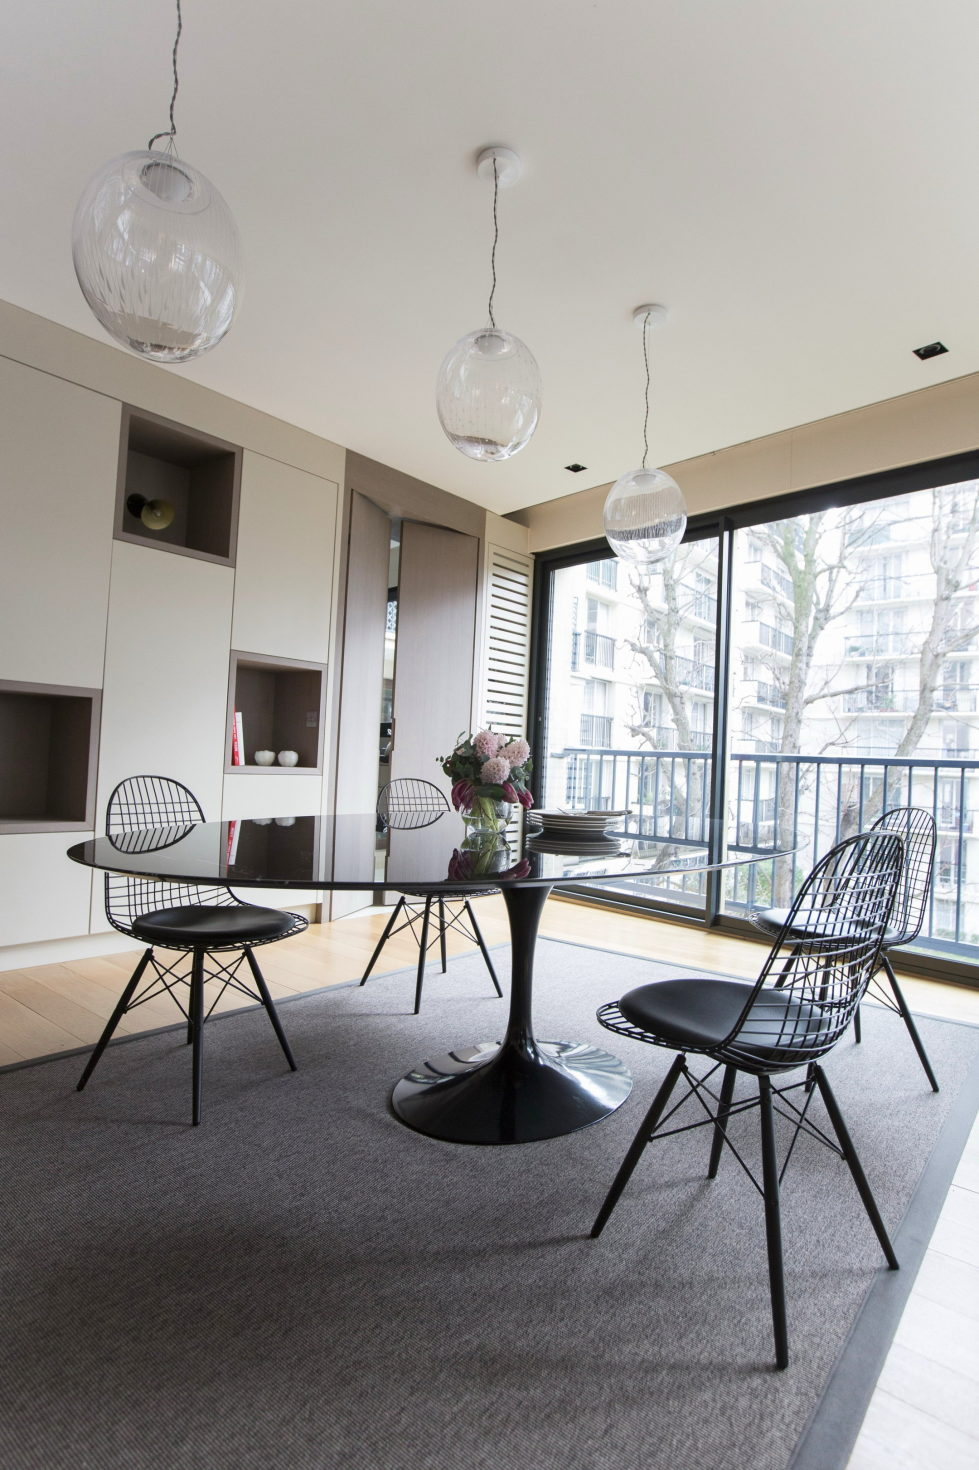 An apartment, also known as Victor Hugoin, in Paris by designer Camille Hermand 5